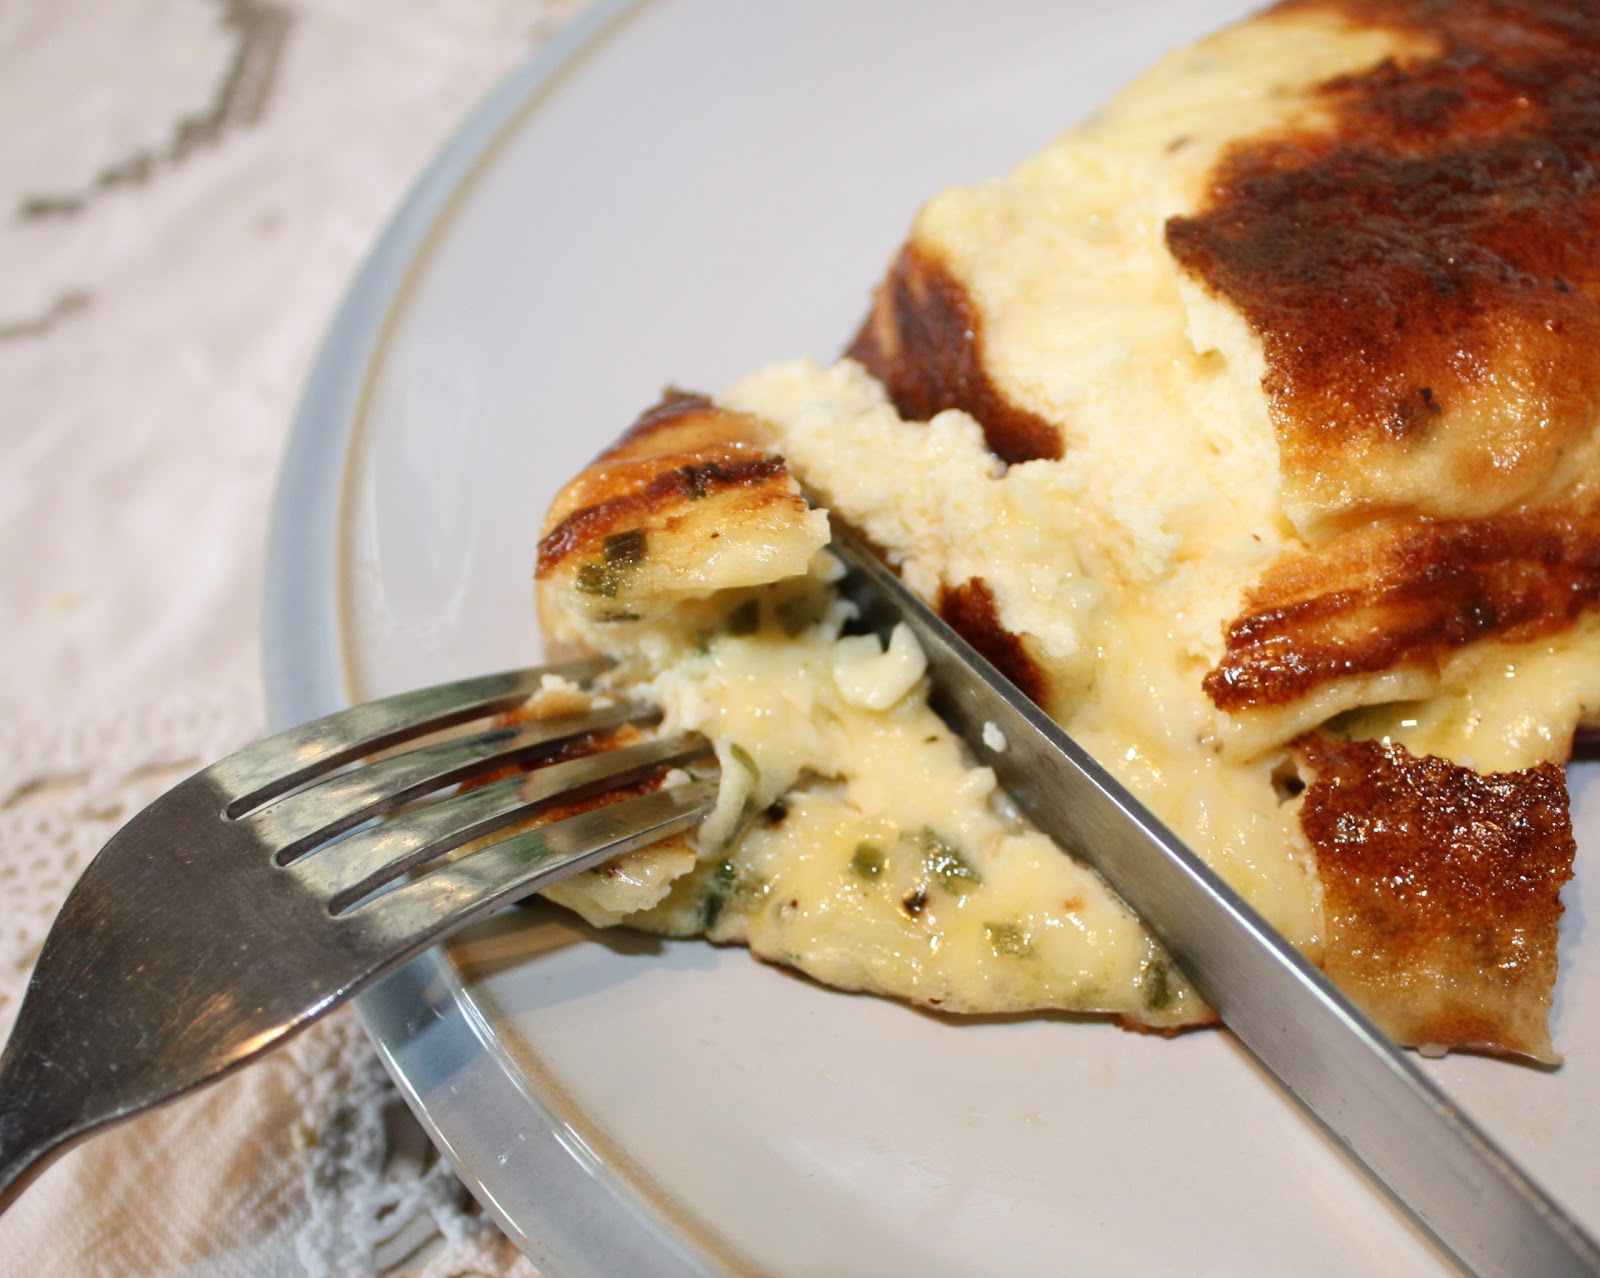 Simple Pleasures - Cheese & Chive Omelette | Mezzamay